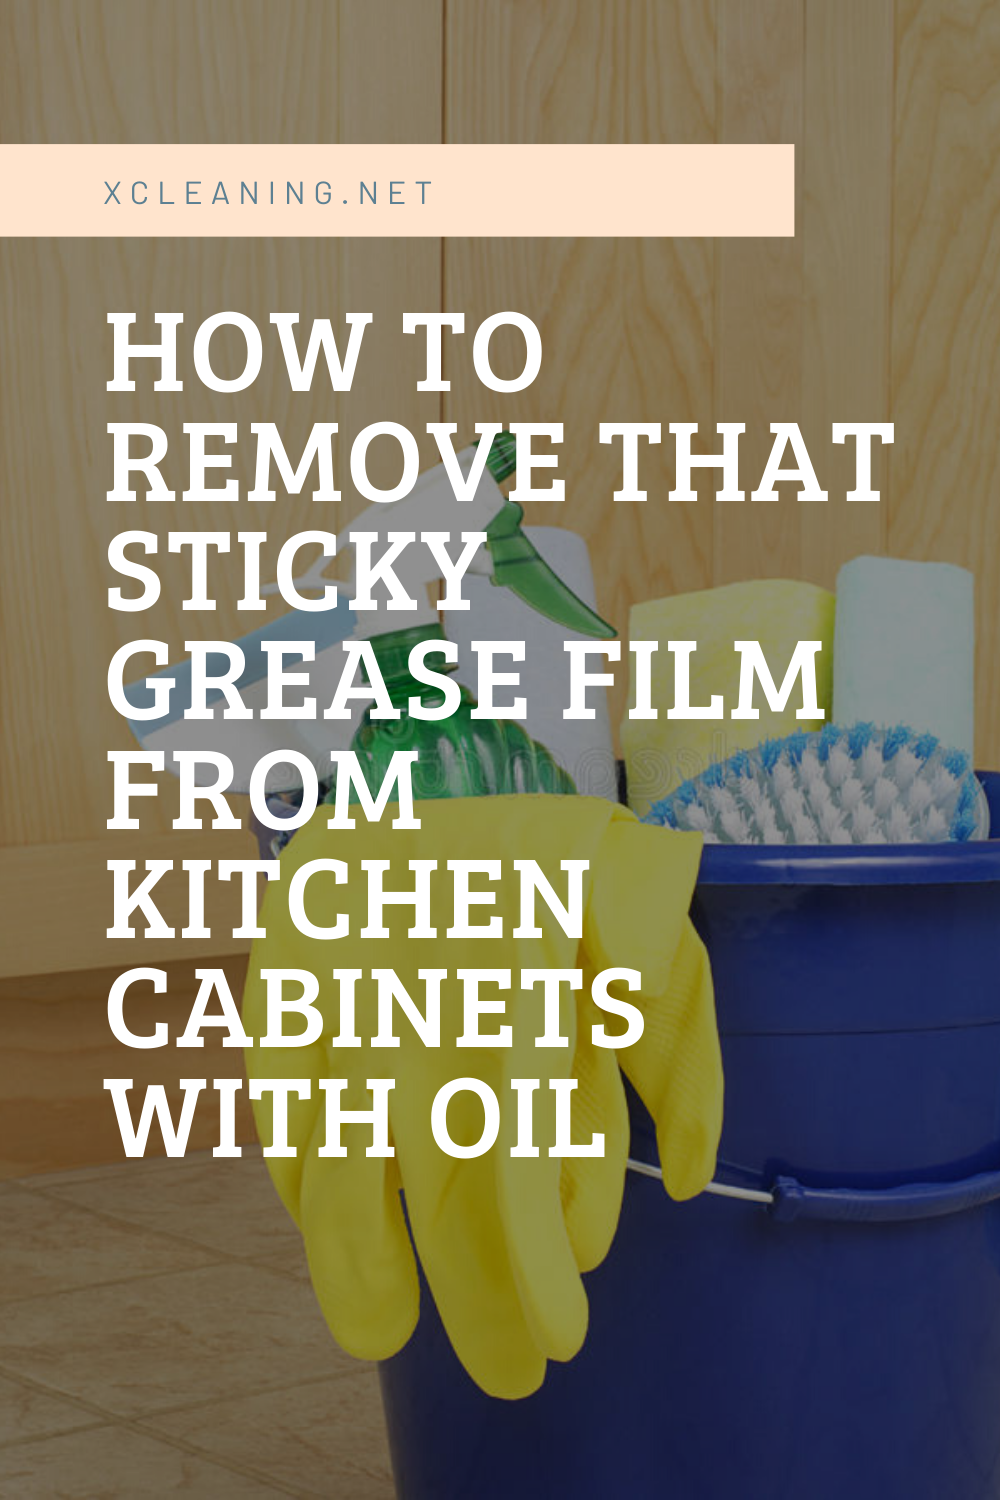 Oil Makes It Oil Breaks It How To Remove That Sticky Grease Film From Kitchen Cabinets With Oil In 2020 Cleaning Hacks Clean House Remove Oil Stains